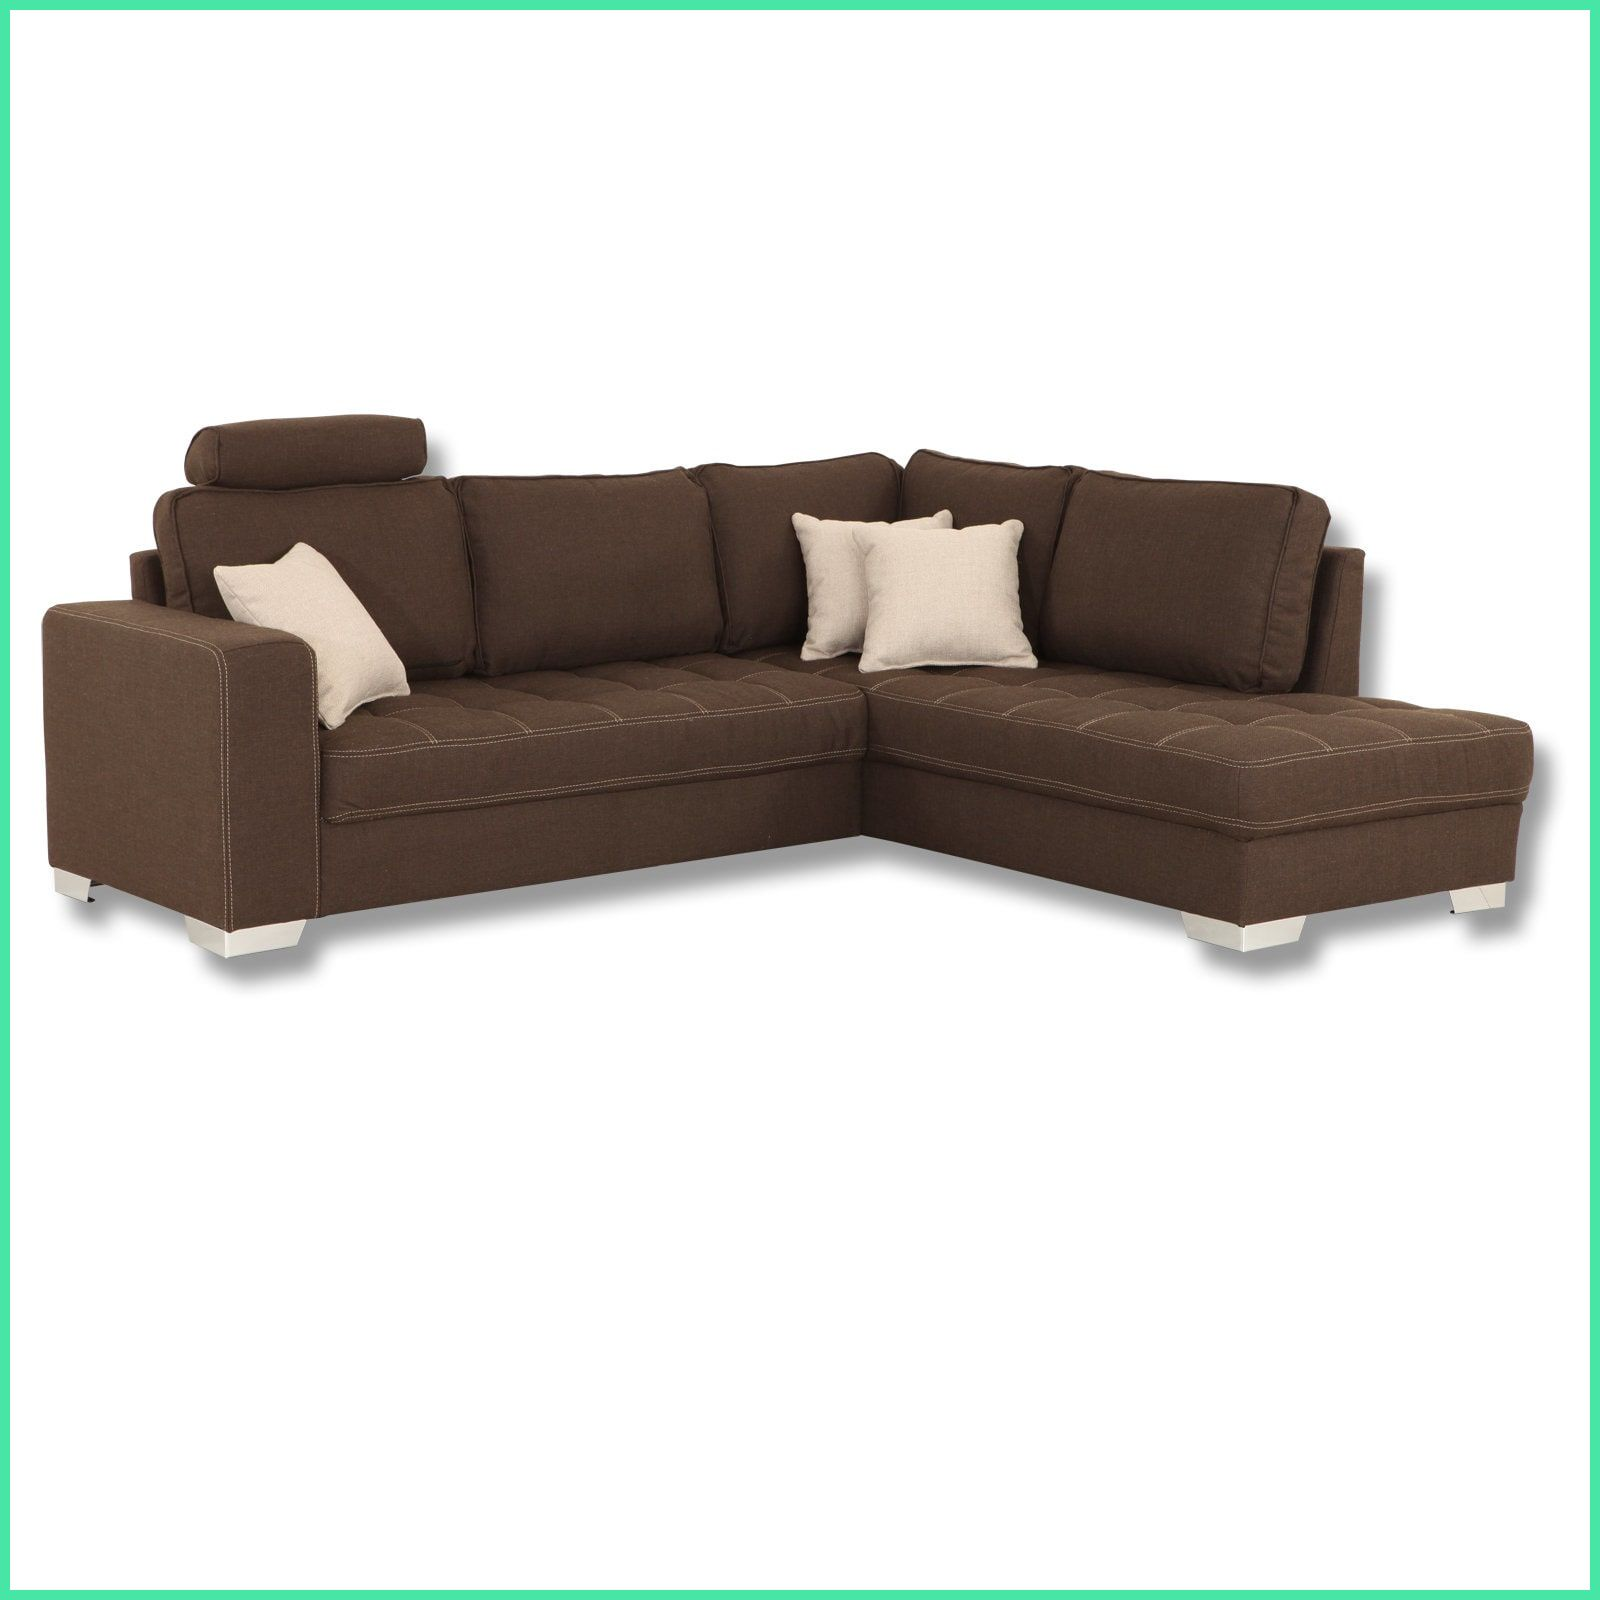 14 Sauber Sofa Bei Roller Modern Couch Couch Sofa